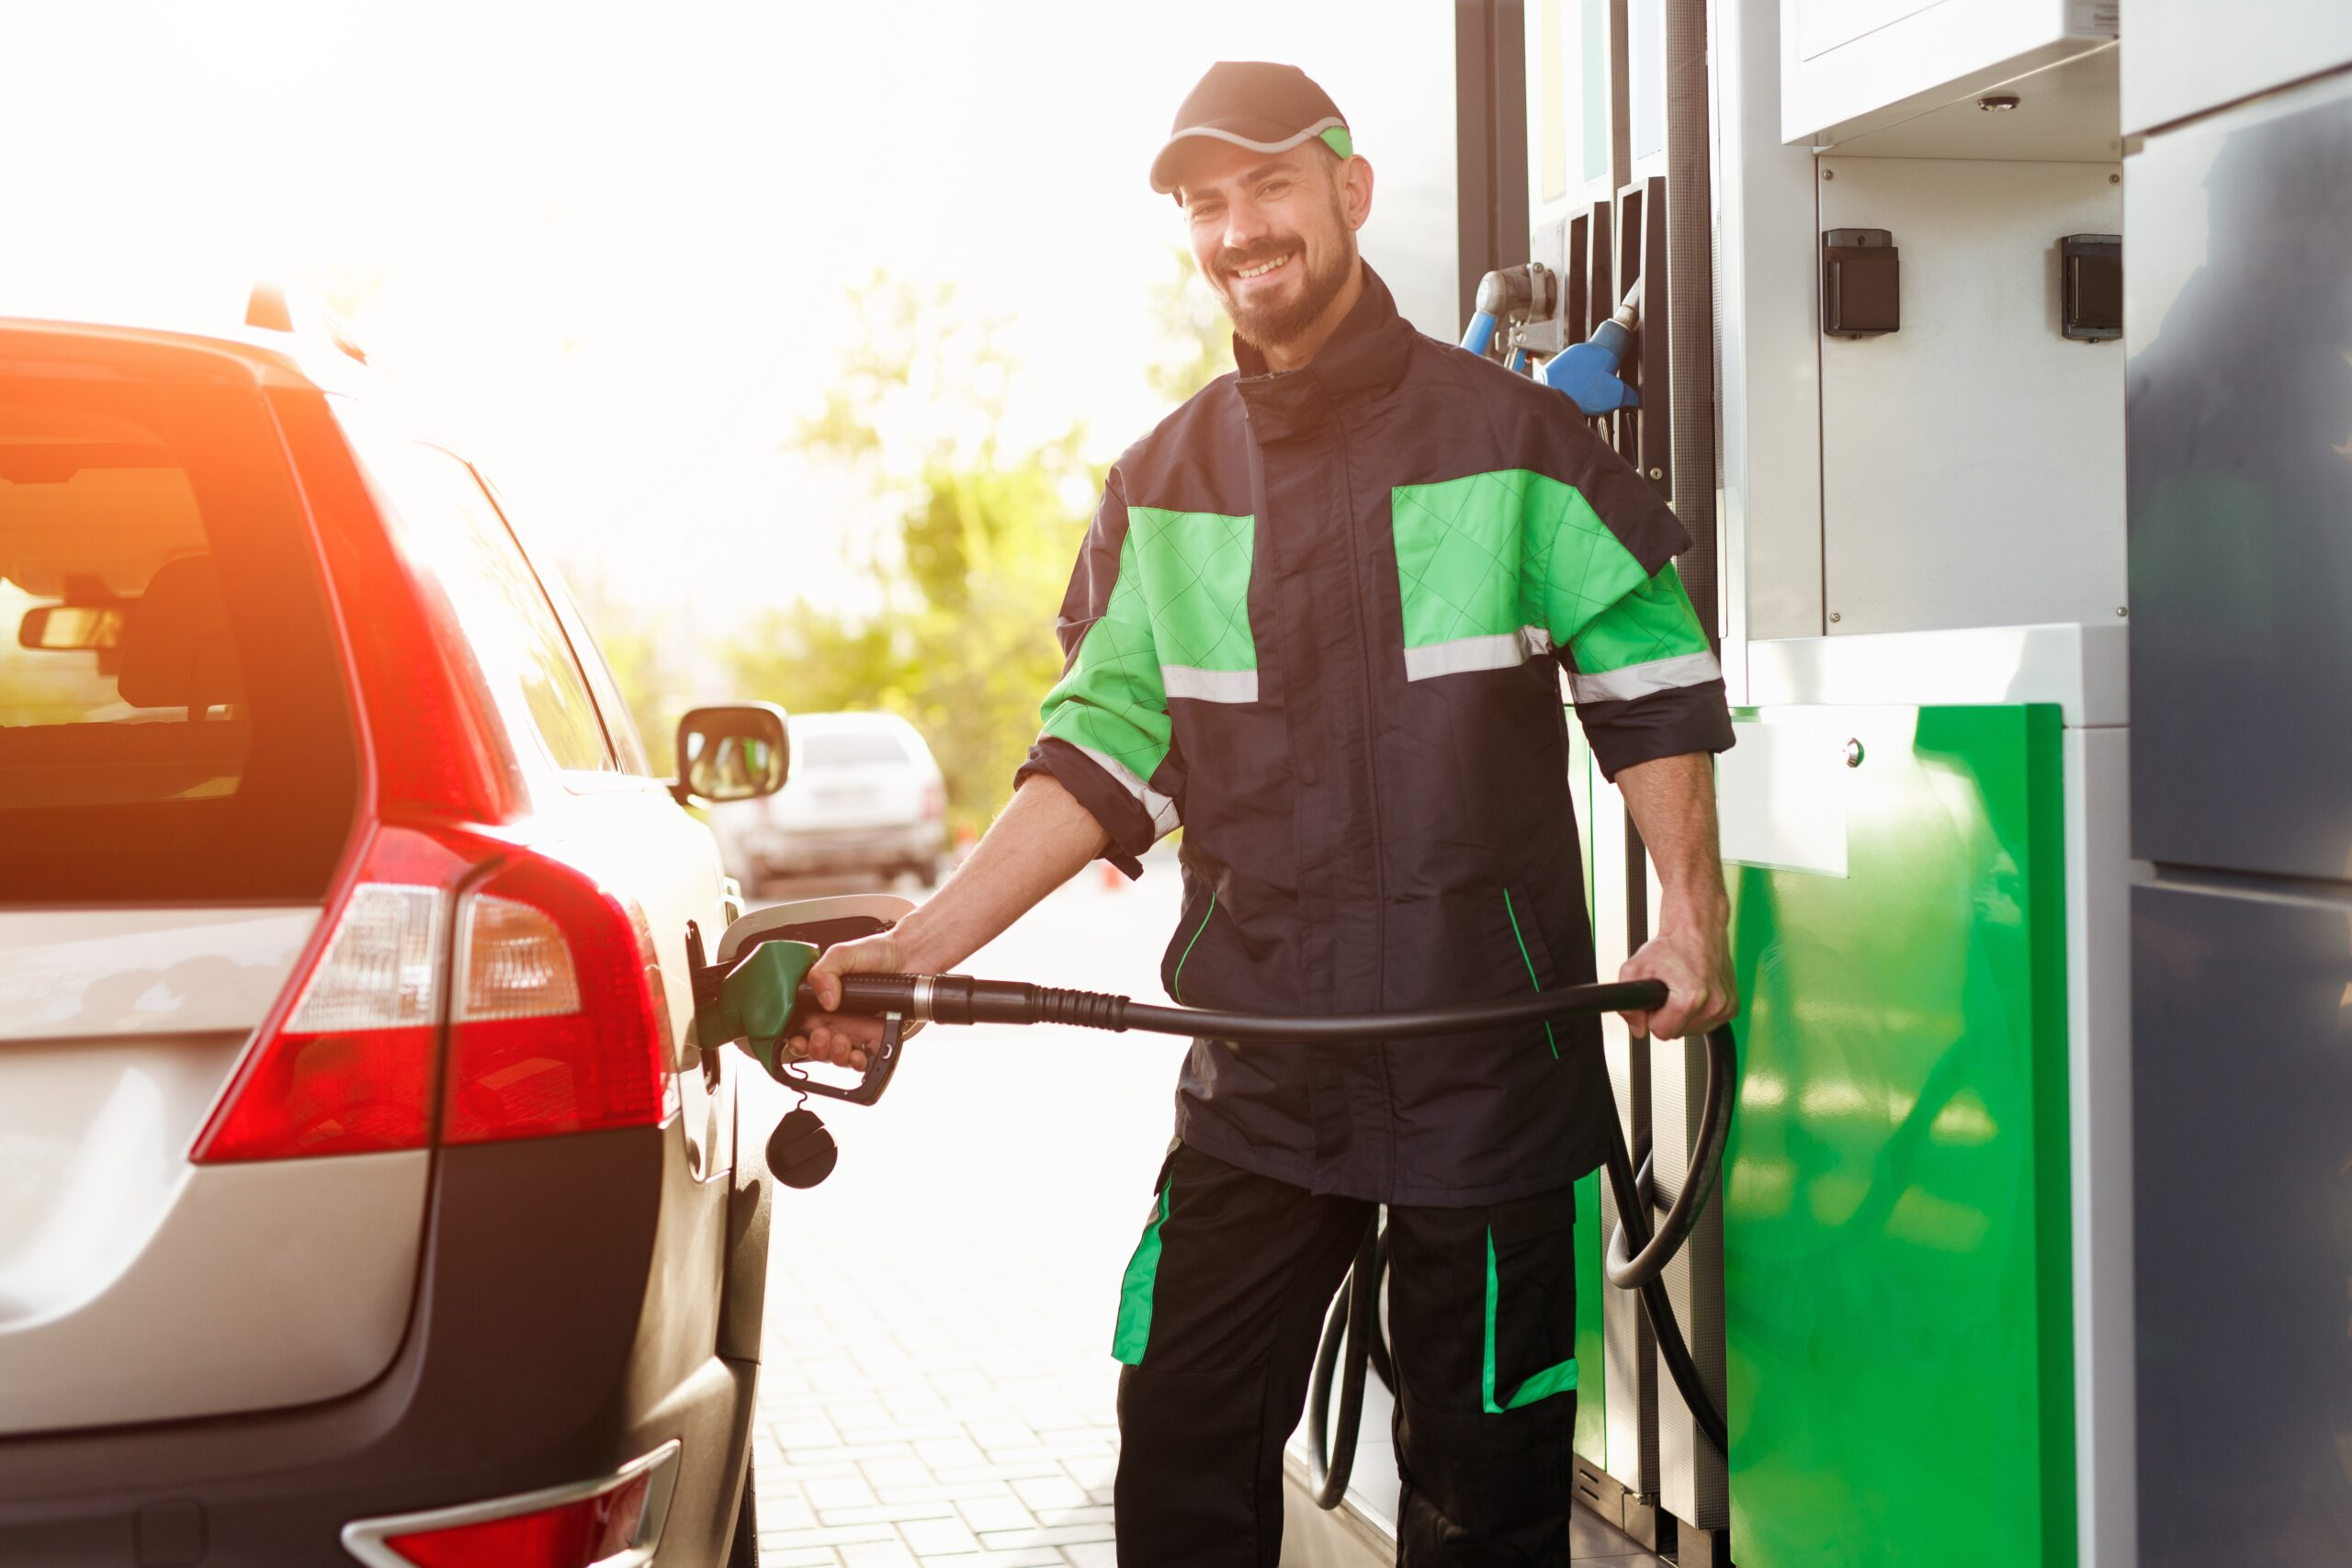 how to pump gas safely